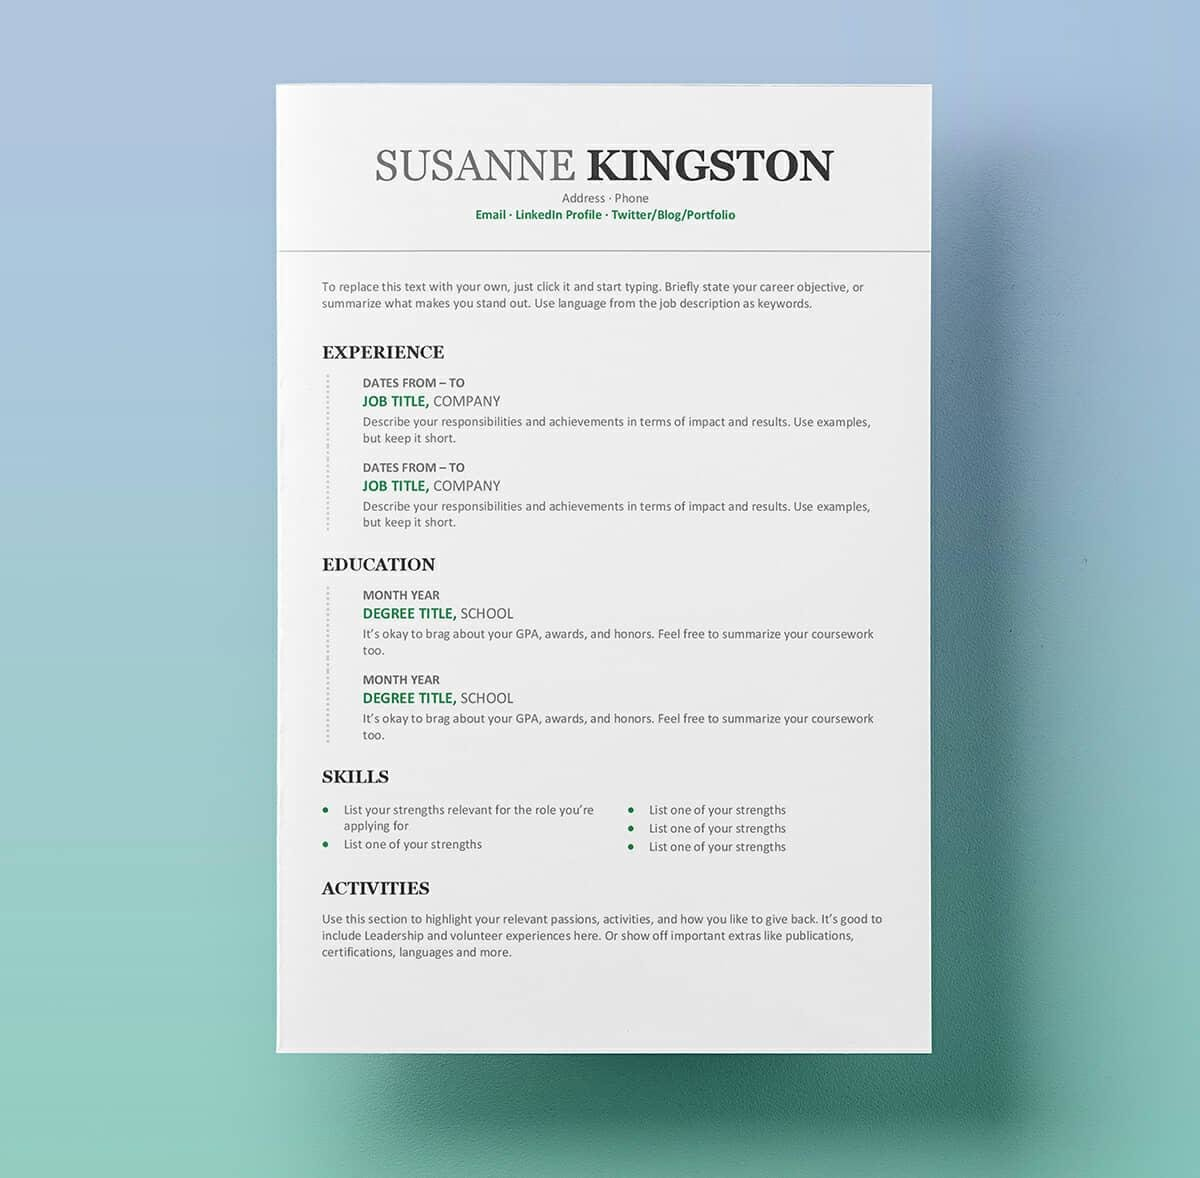 Microsoft Word Resume With Green Details